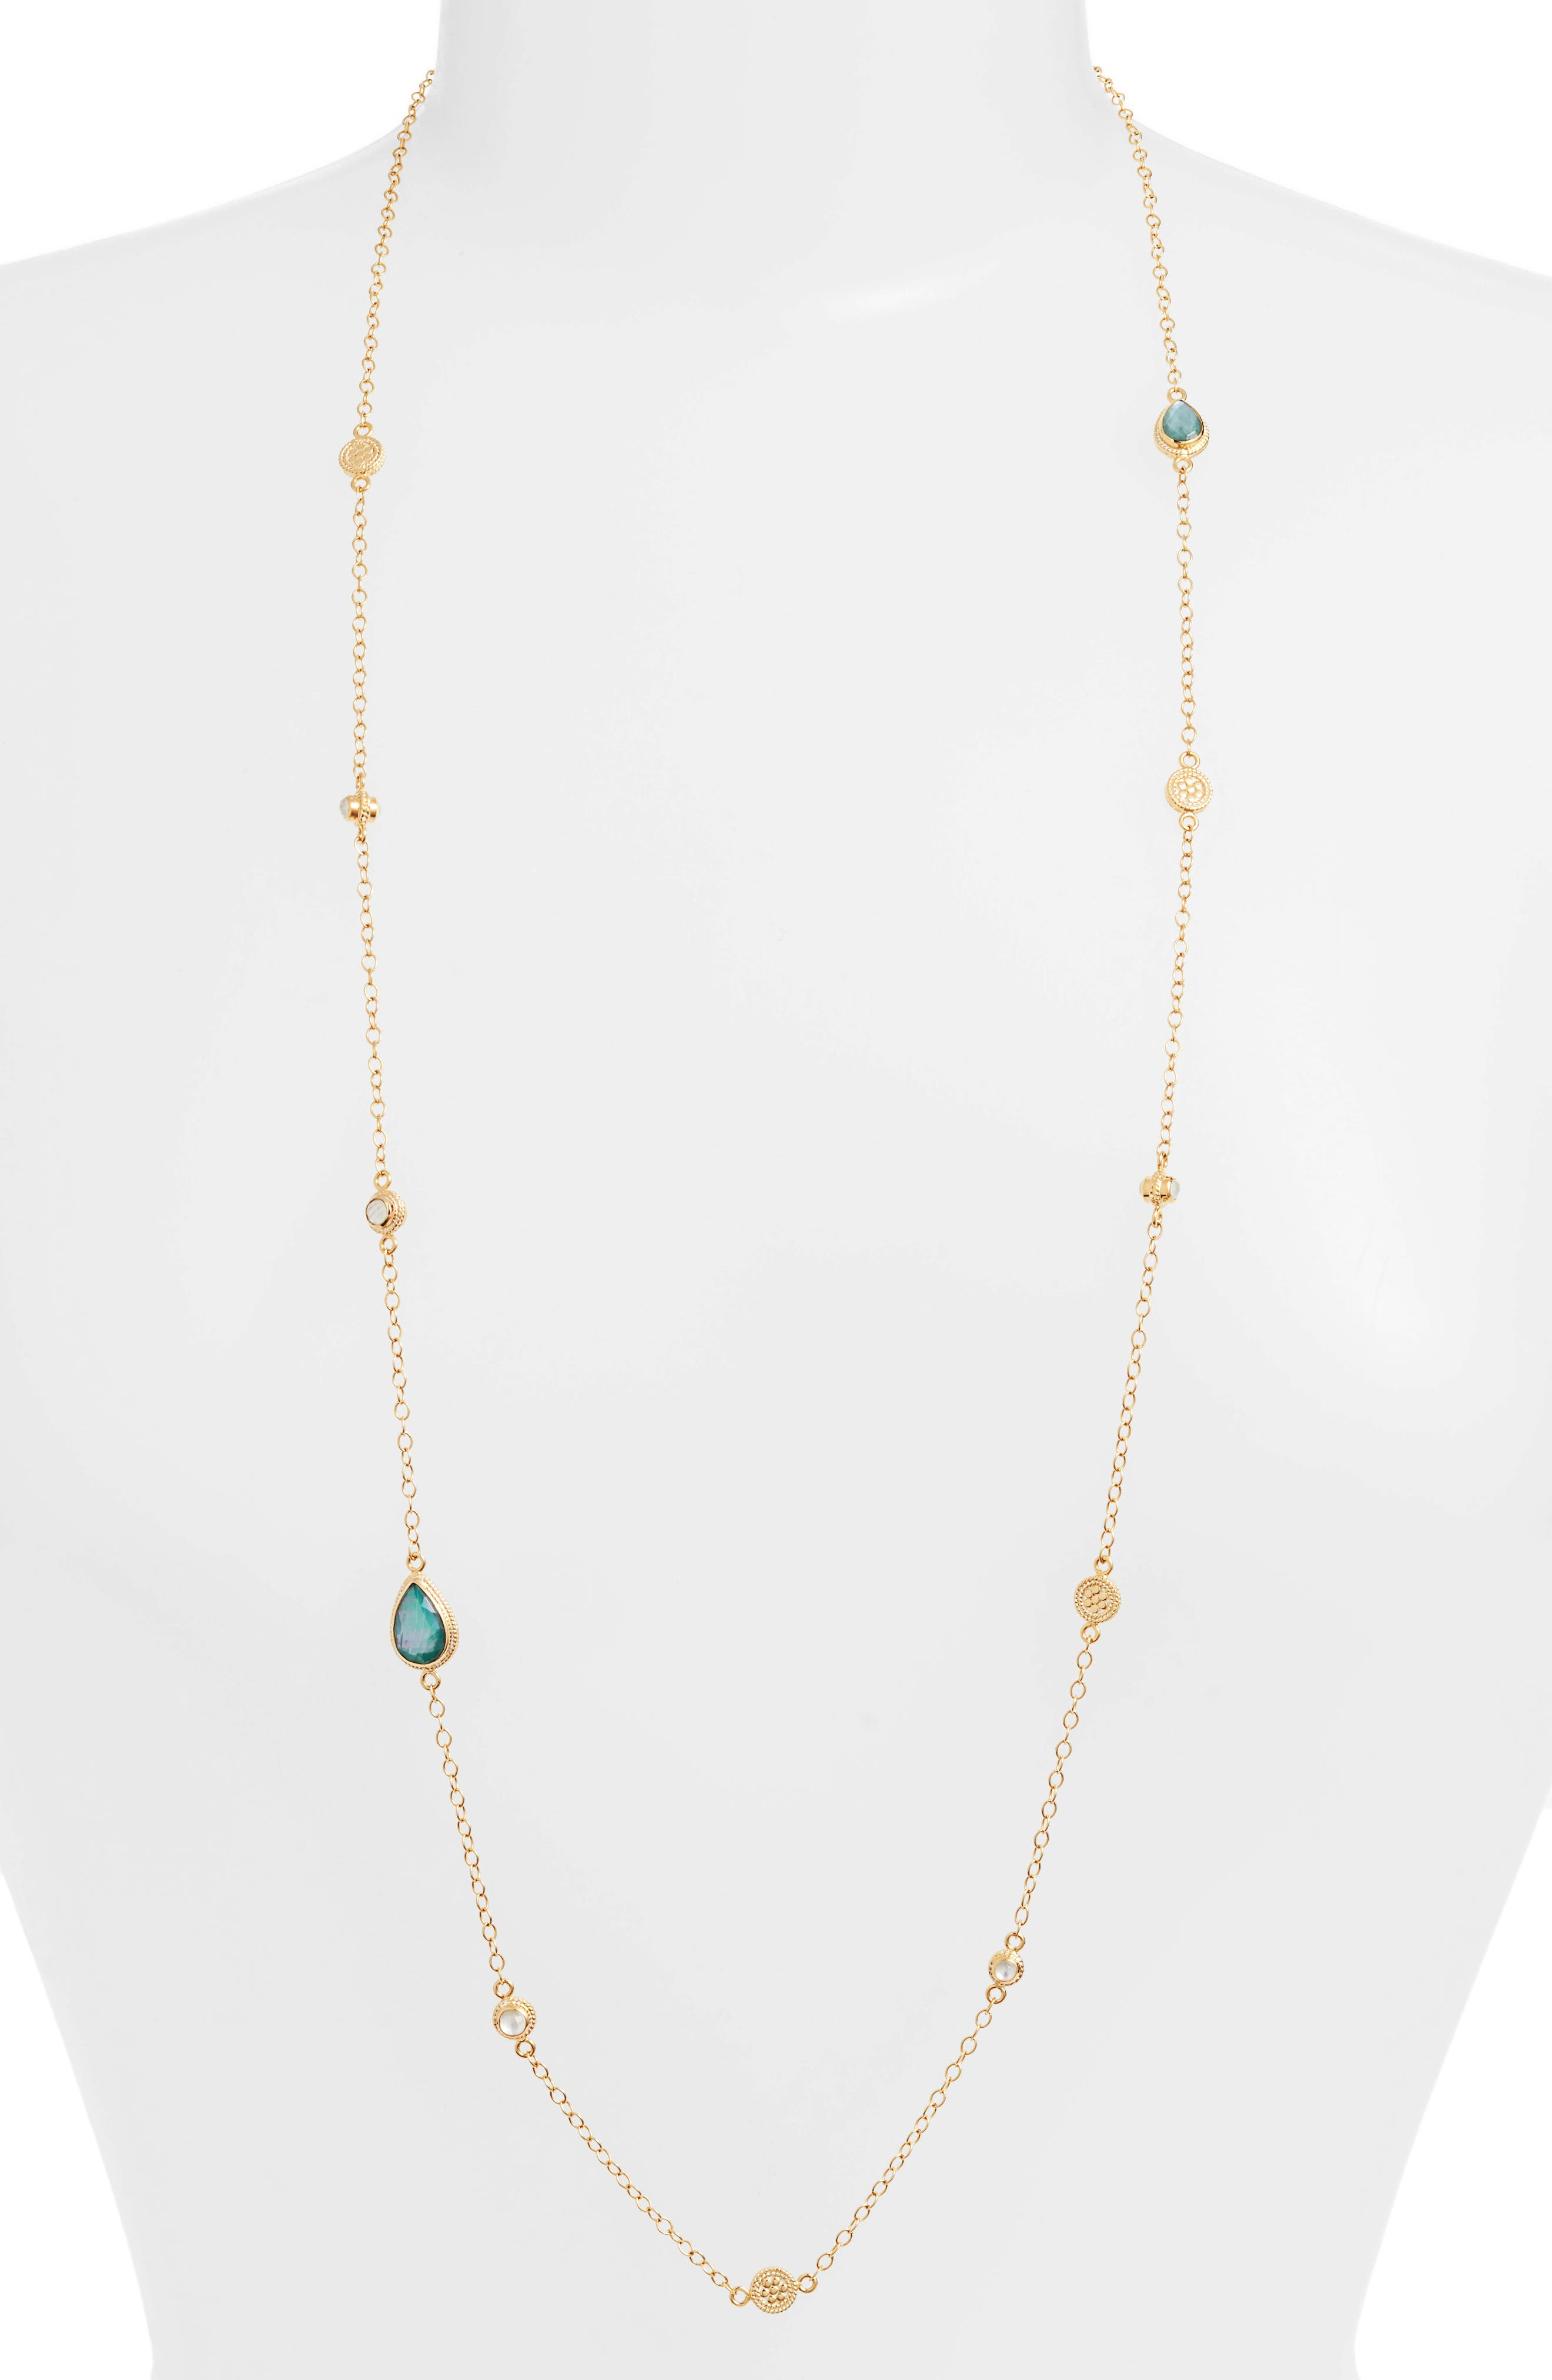 ANNA BECK Malachite & Mother of Pearl Station Necklace, Main, color, GOLD/ MALACHITE/ MOP